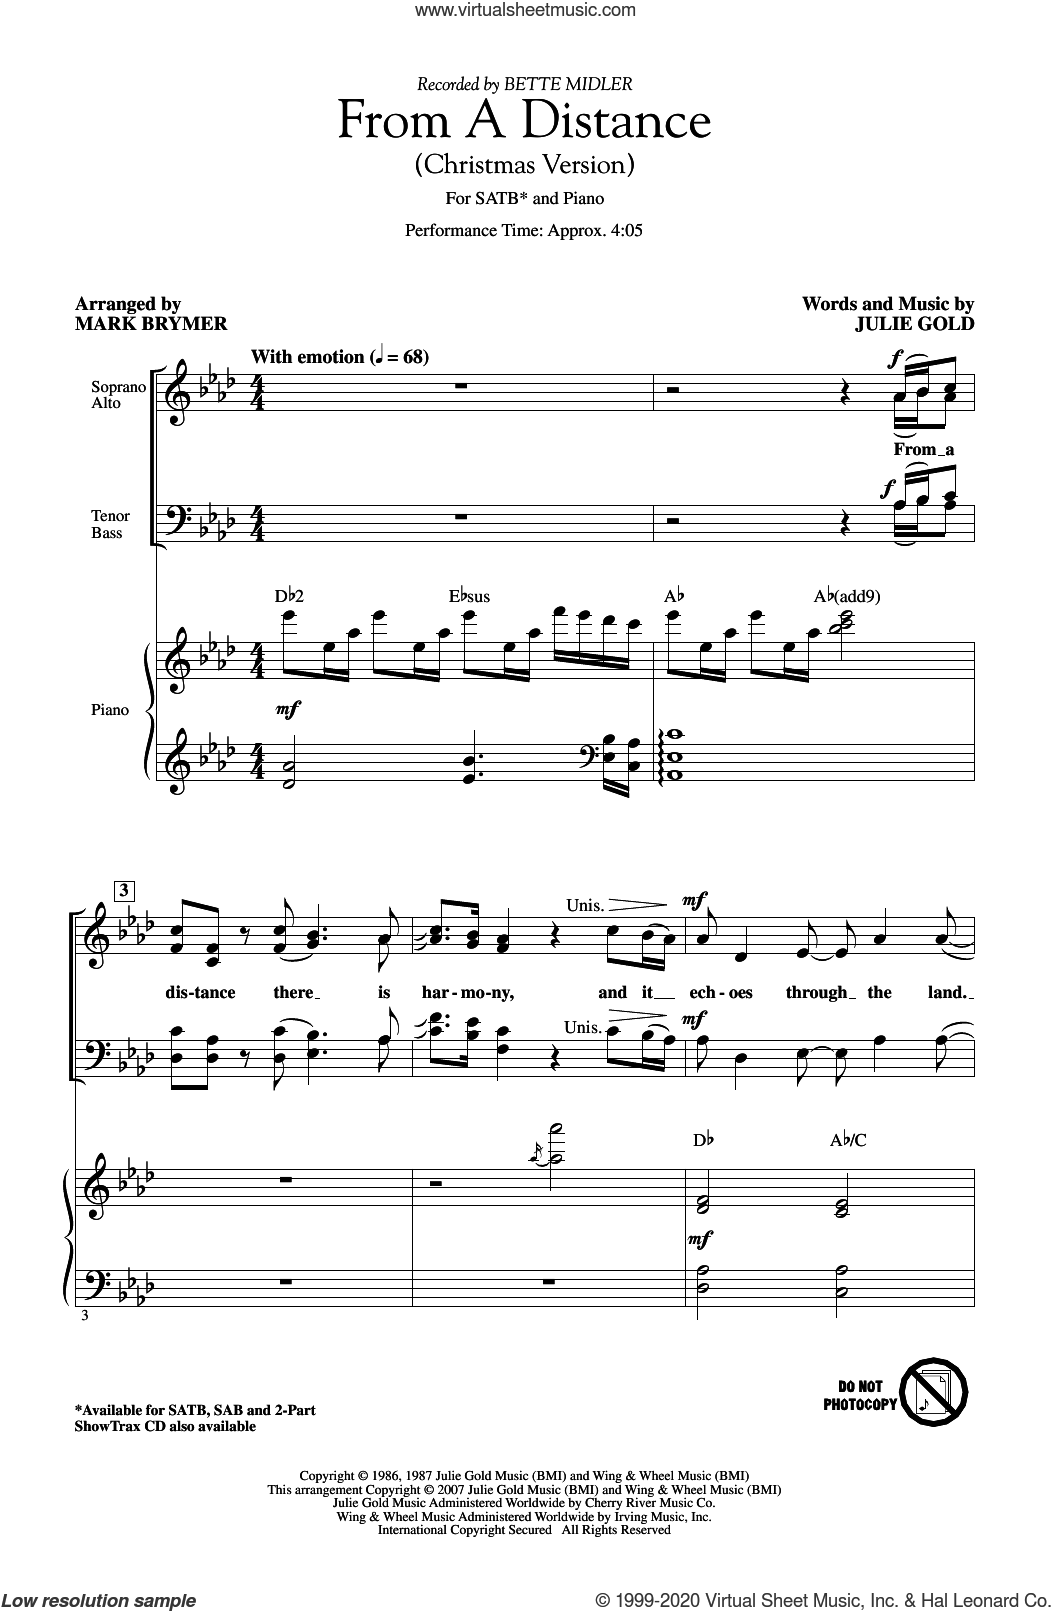 From A Distance (Christmas Version) (arr. Mark Brymer) sheet music for choir (SATB: soprano, alto, tenor, bass) by Bette Midler, Mark Brymer and Julie Gold, intermediate skill level